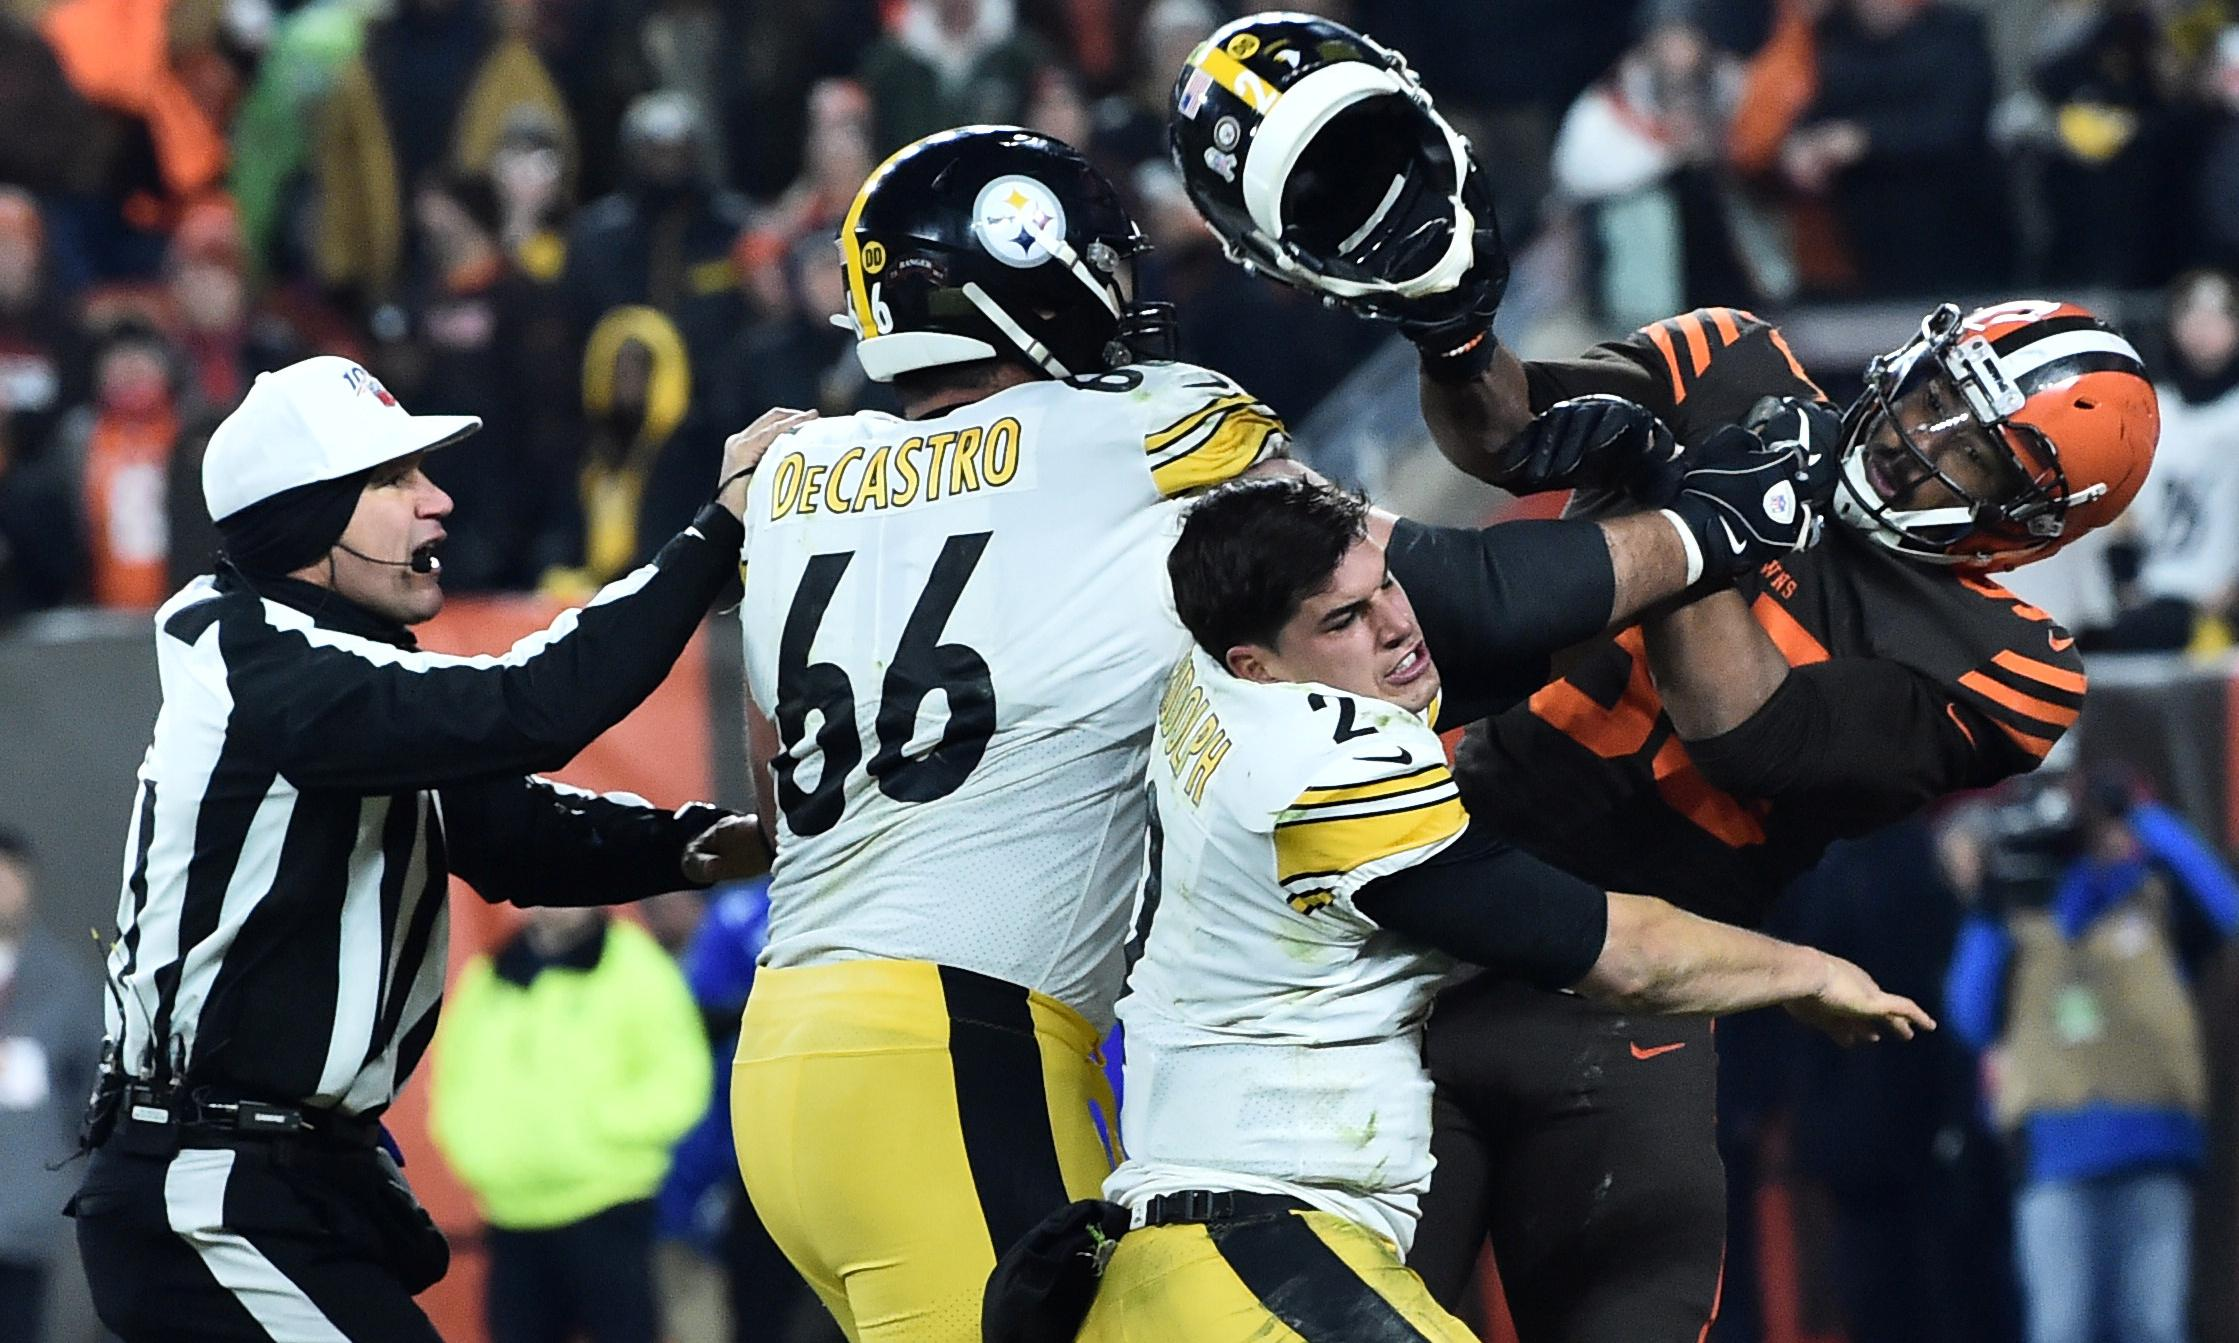 Mason Rudolph says he has no excuse for role in Browns-Steelers brawl